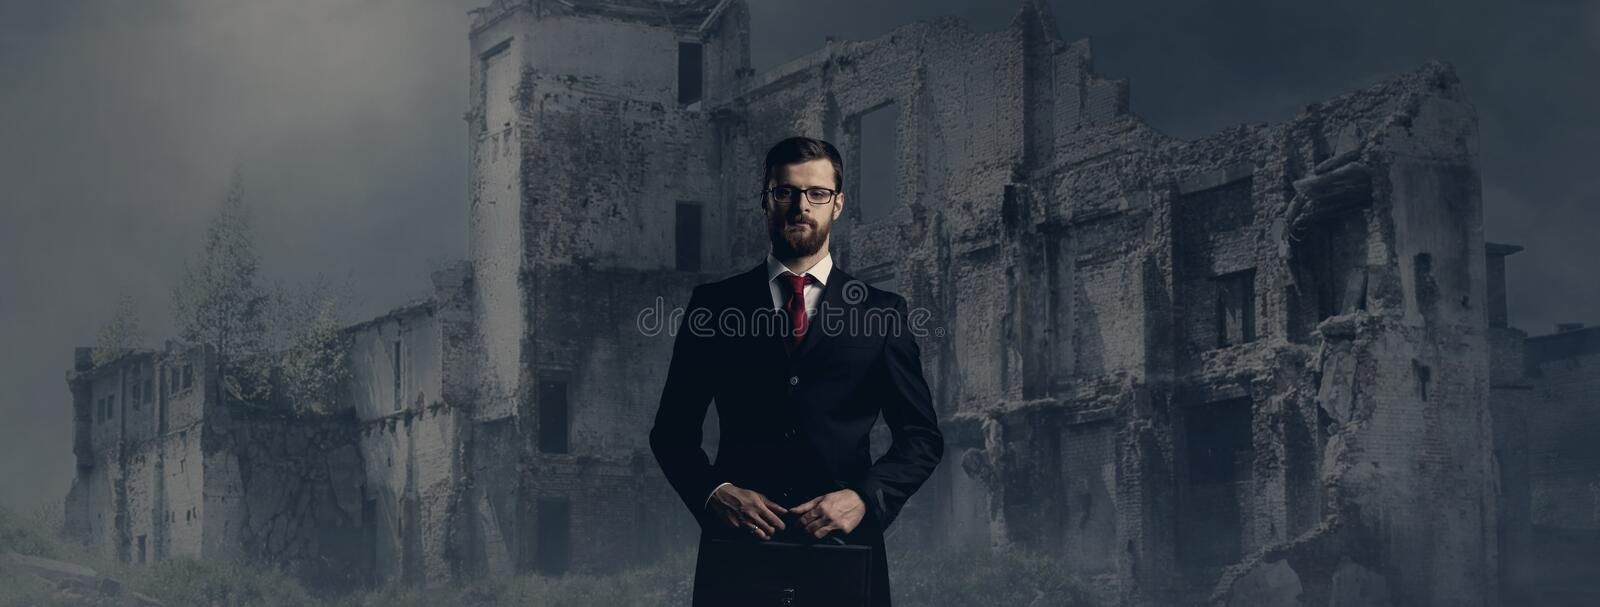 Businessman standing over apocalyptic background. Crisis, default, setback concept. stock photo